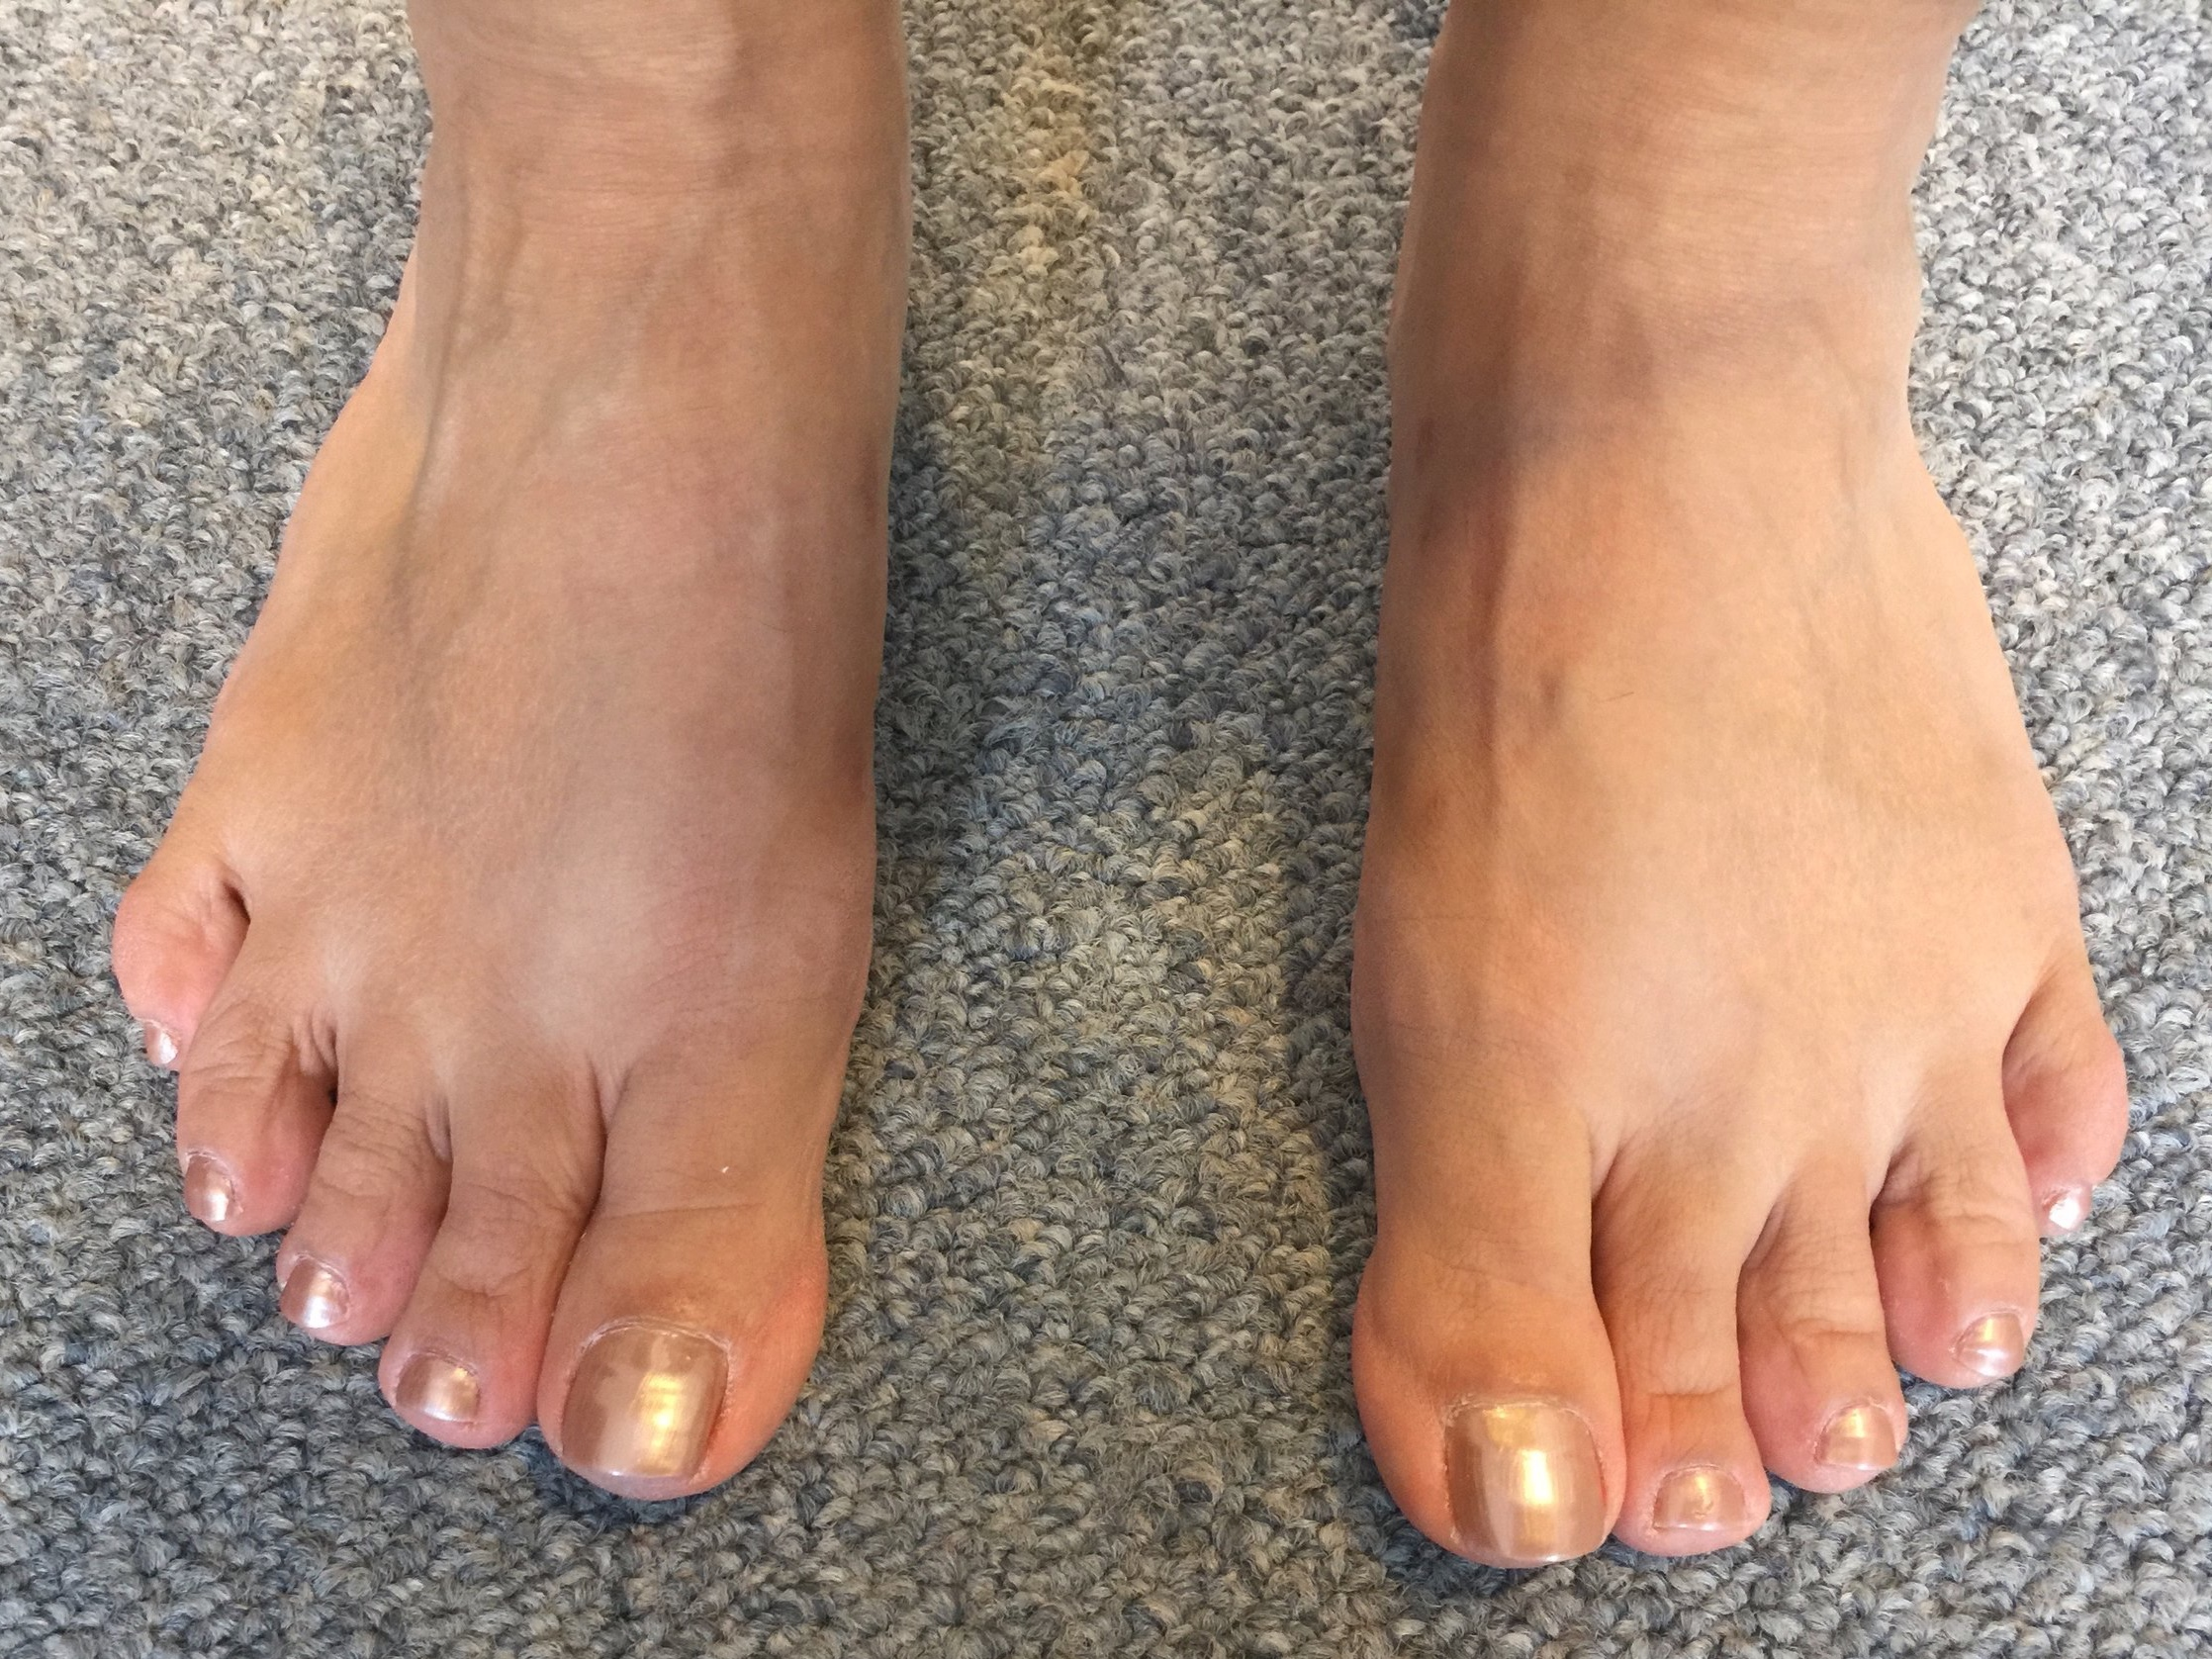 Case 7: Six months after MICA (ProStep)